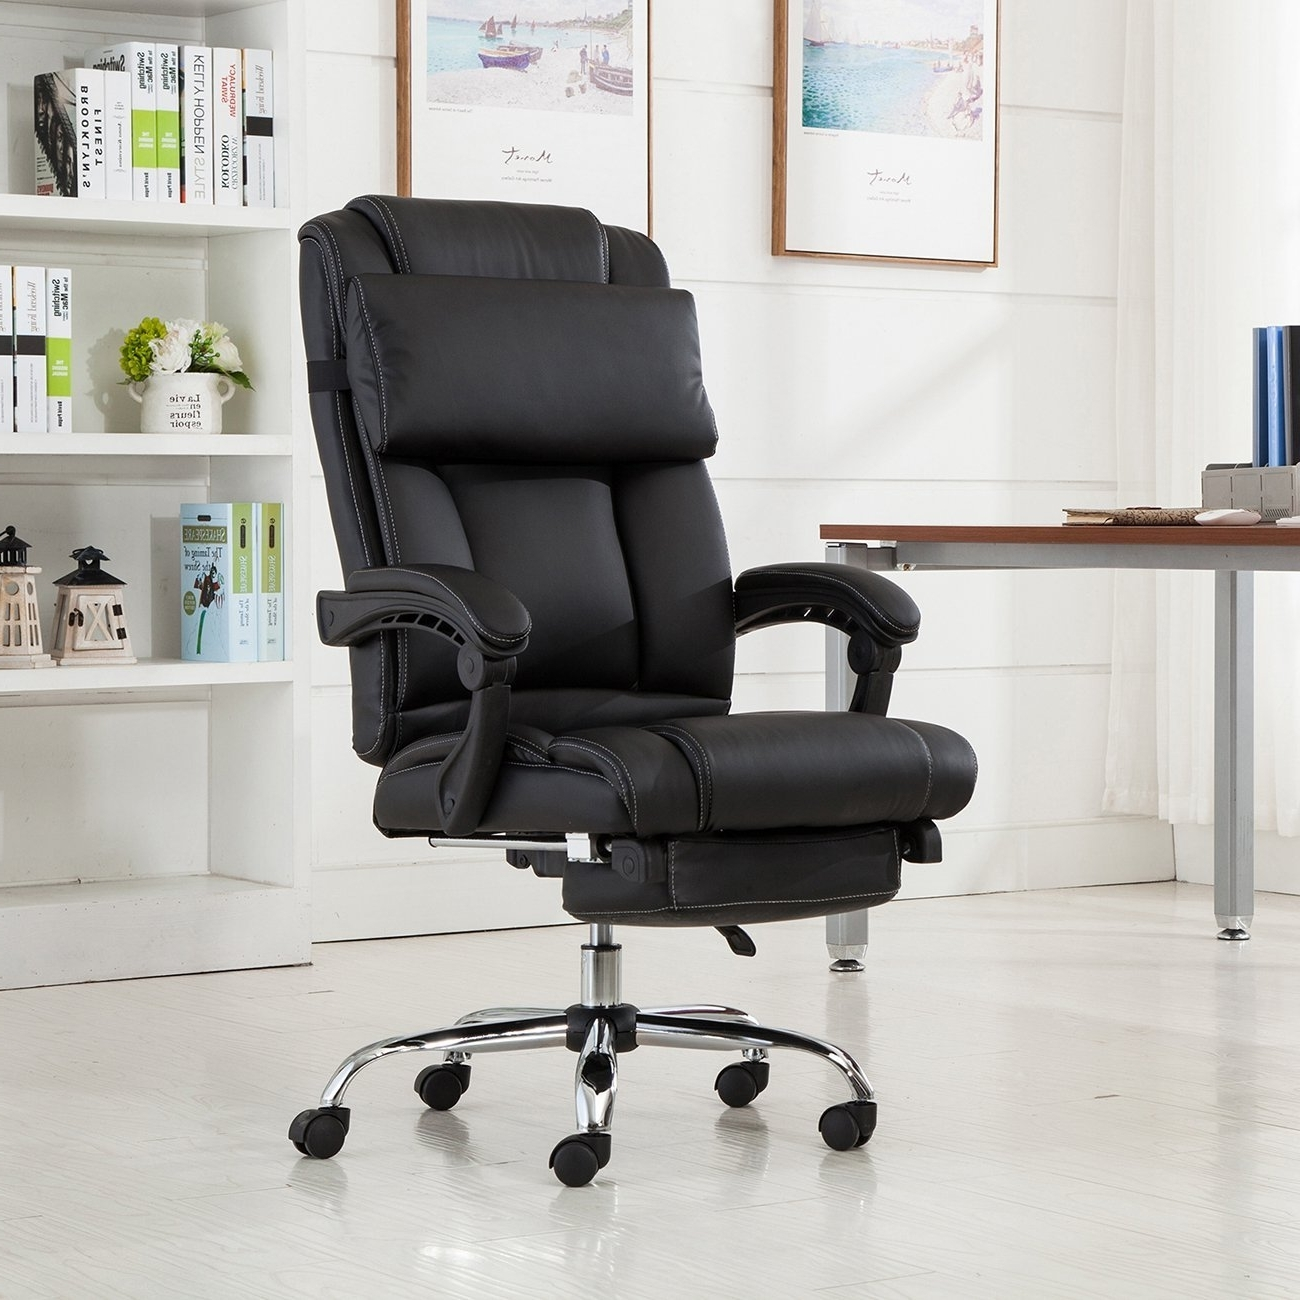 Executive Office Chairs Reclining Regarding 2019 Top 10 Reclining Office Chairs Reviewed (Gallery 4 of 20)